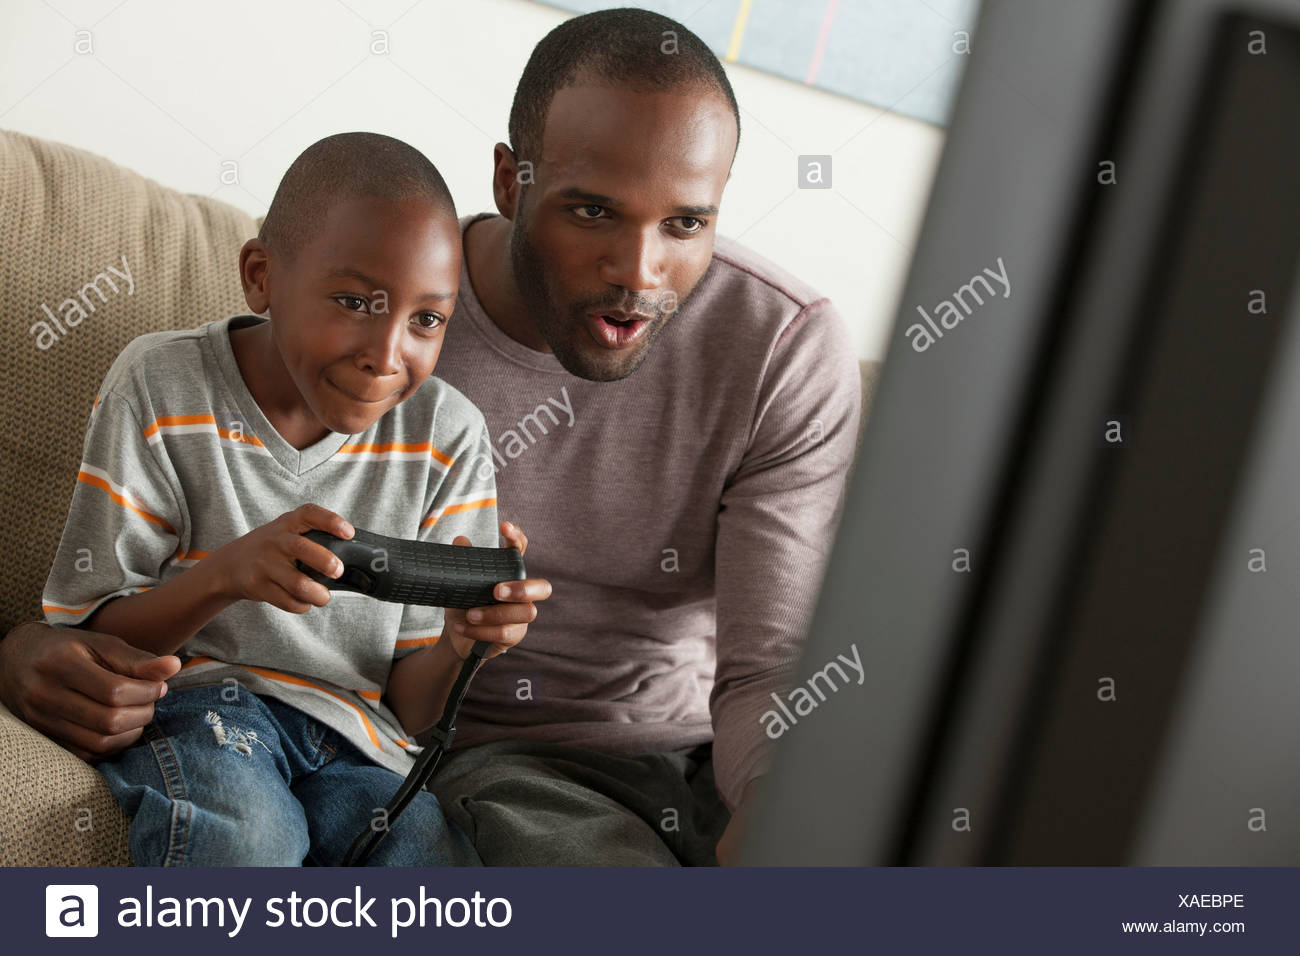 Father and Son playing video game Photo Stock